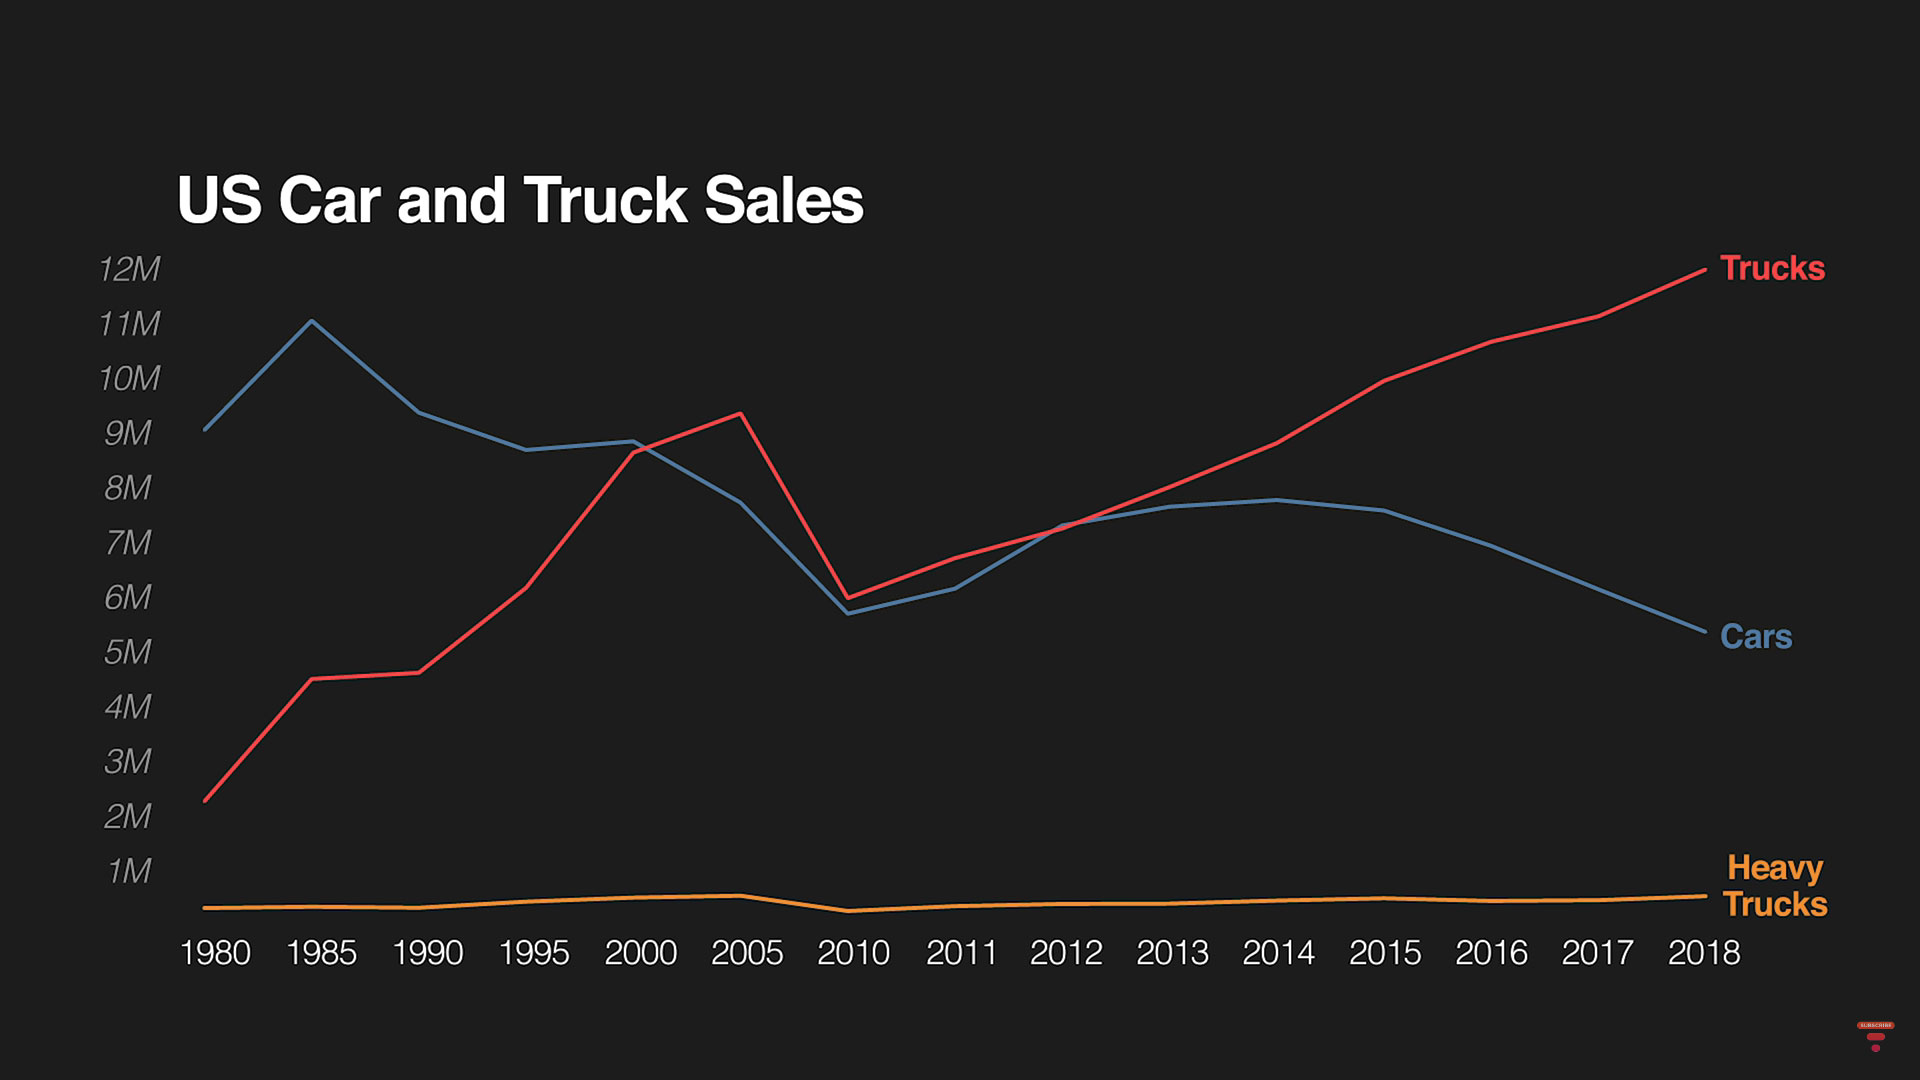 US Car and Truck Sales since 1980.